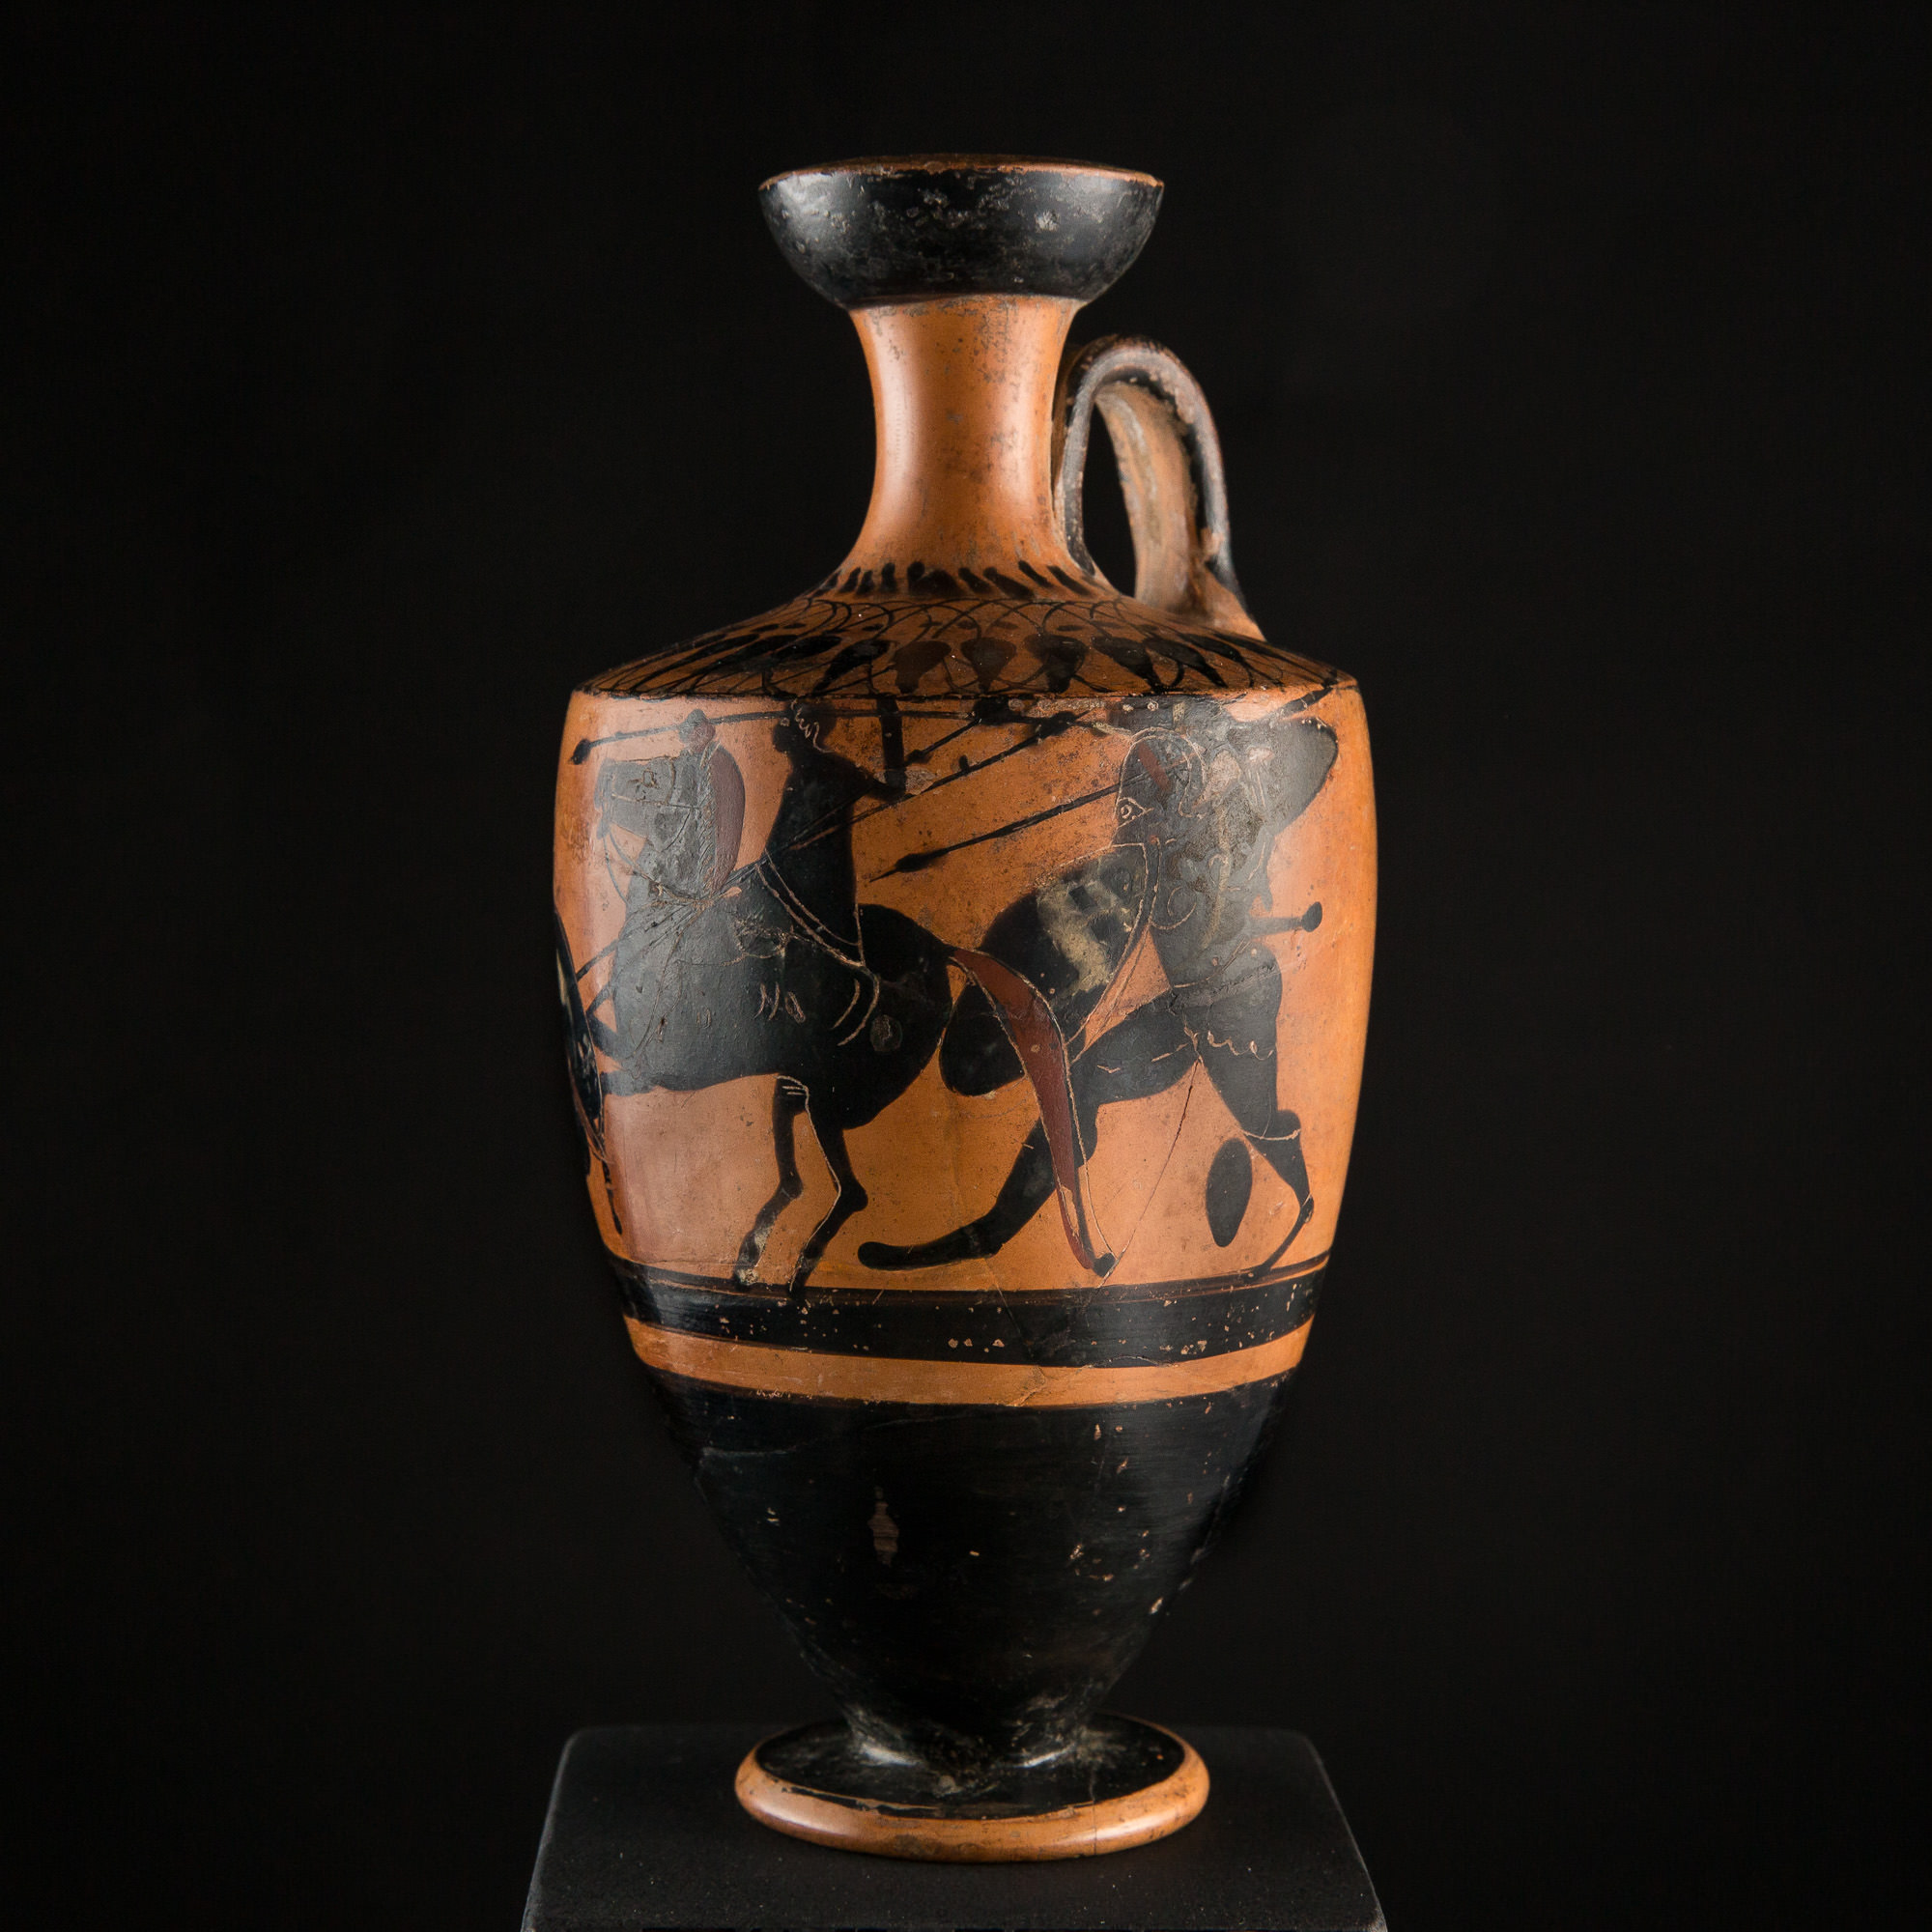 Photo of ancient-civilisation-greece-red-and-black-ware-vessel